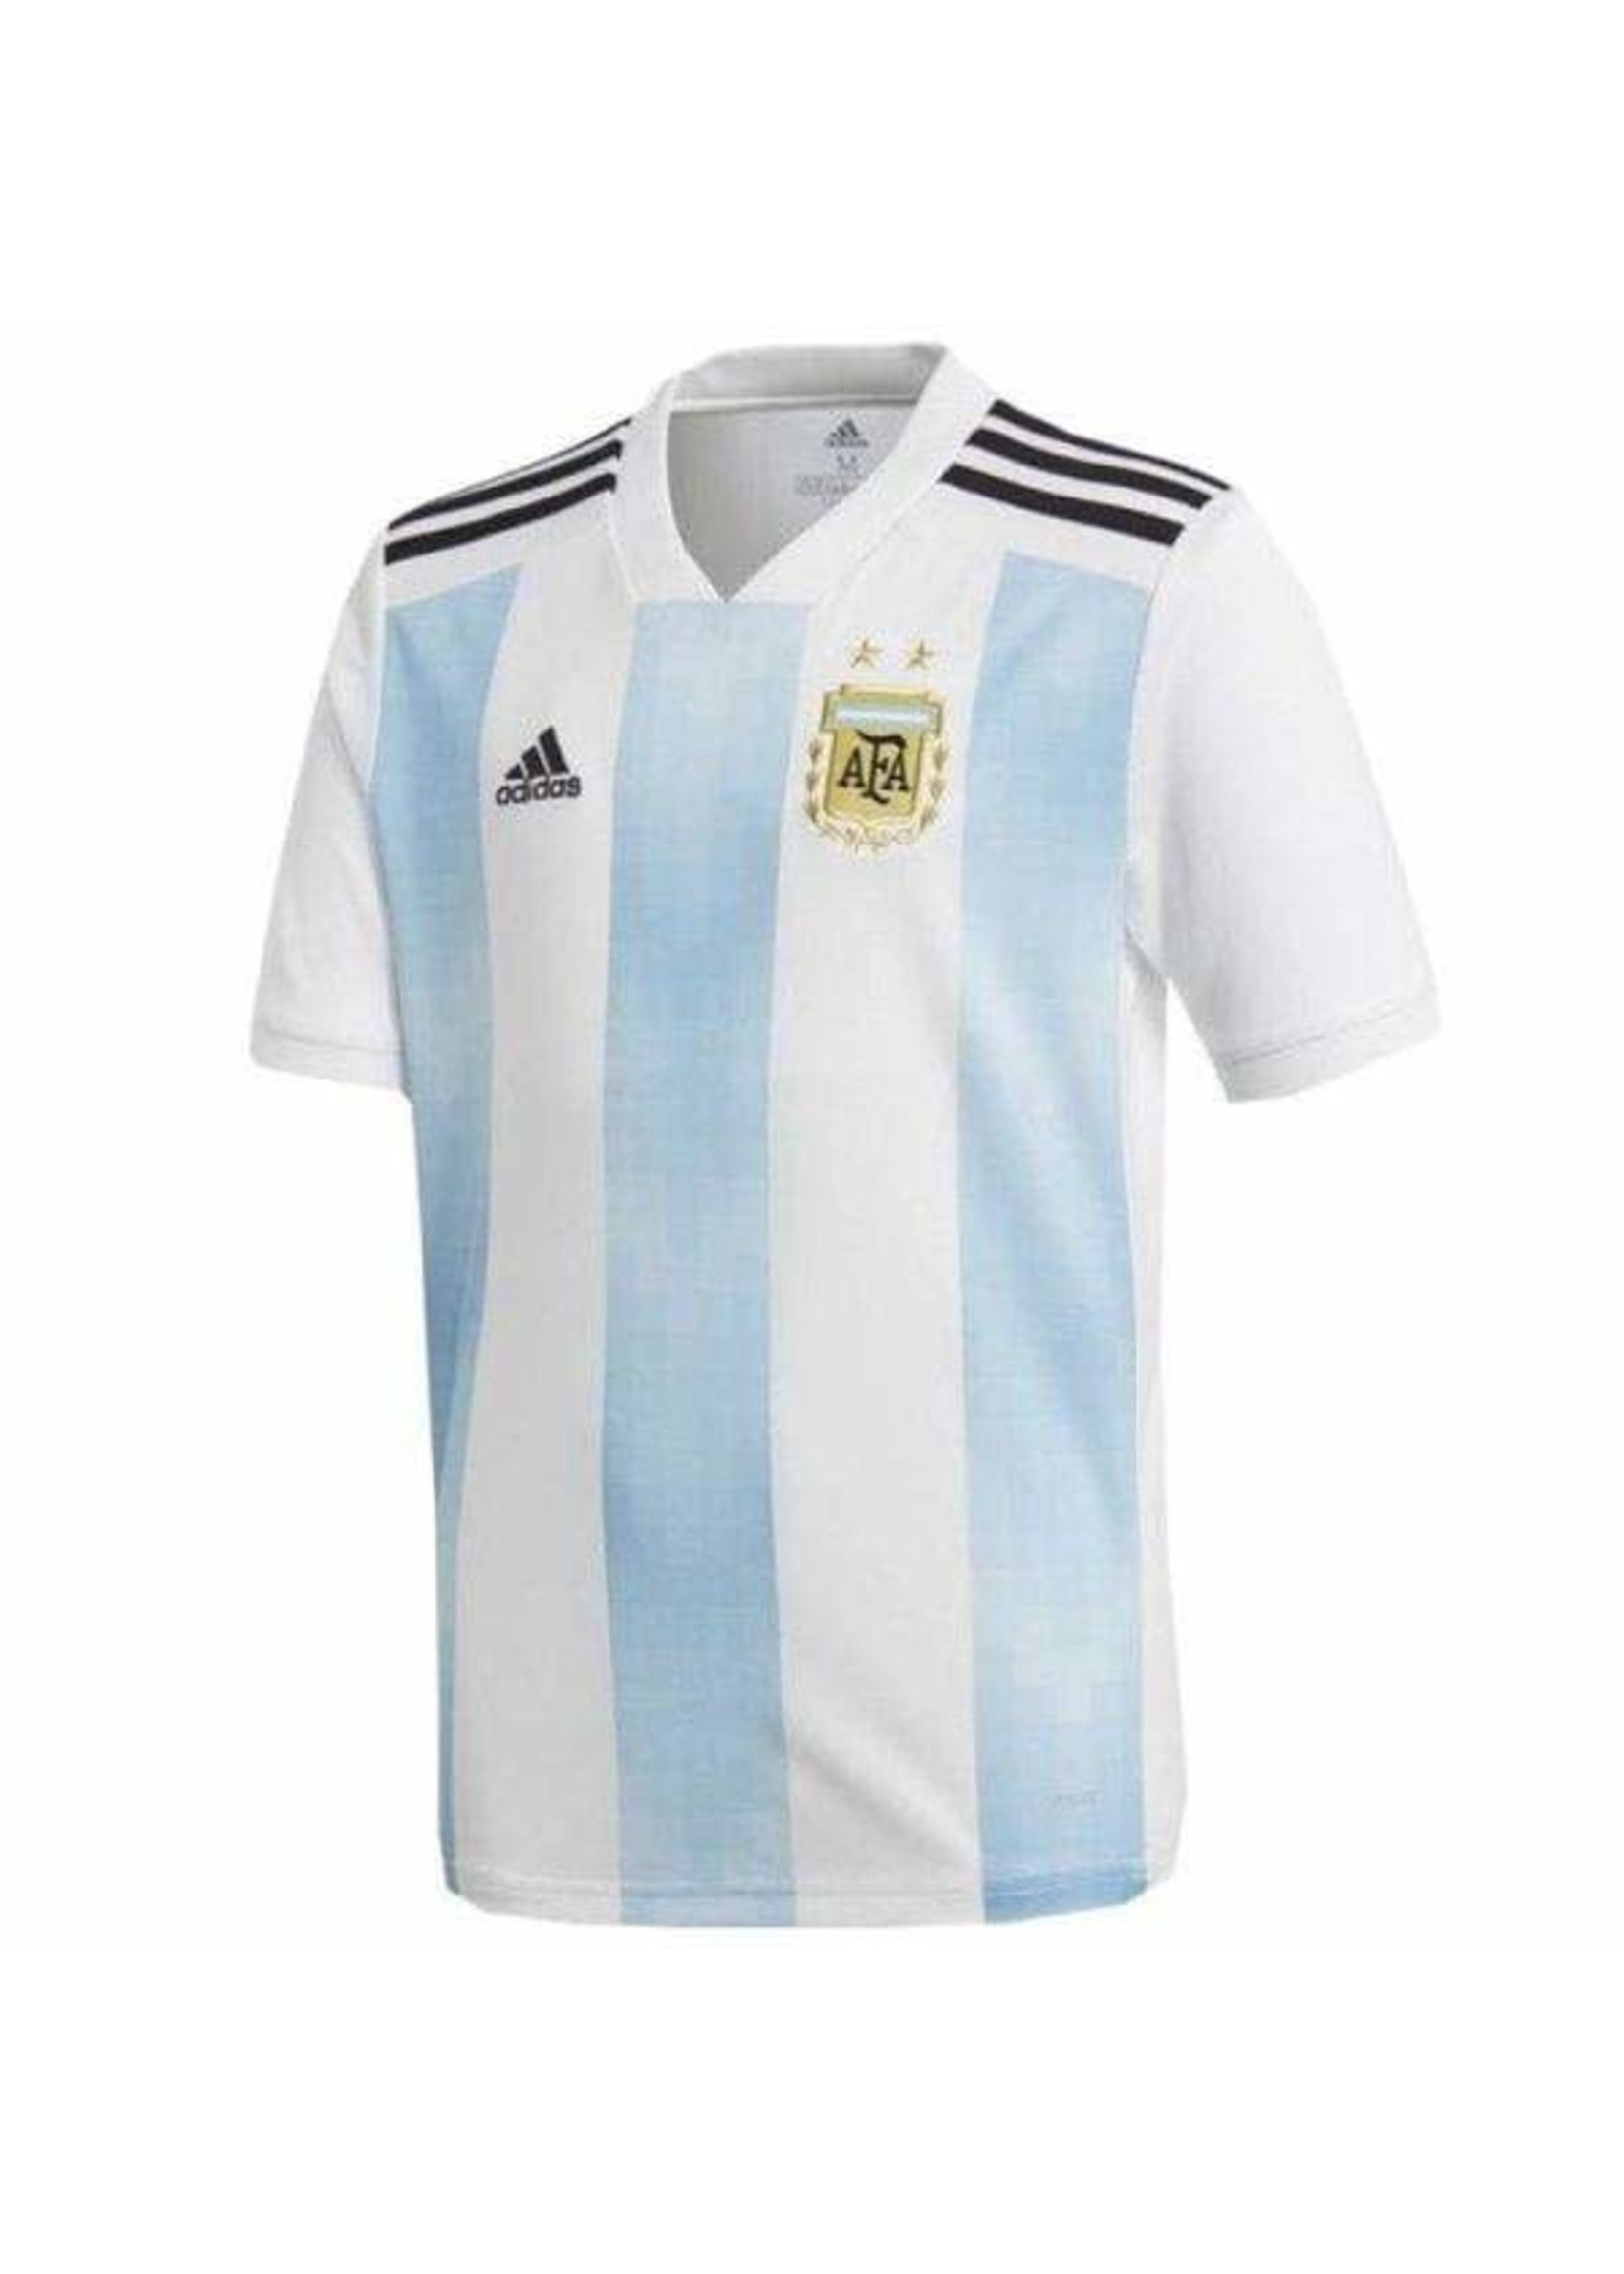 Adidas Argentina 18/19 Home Jersey Youth